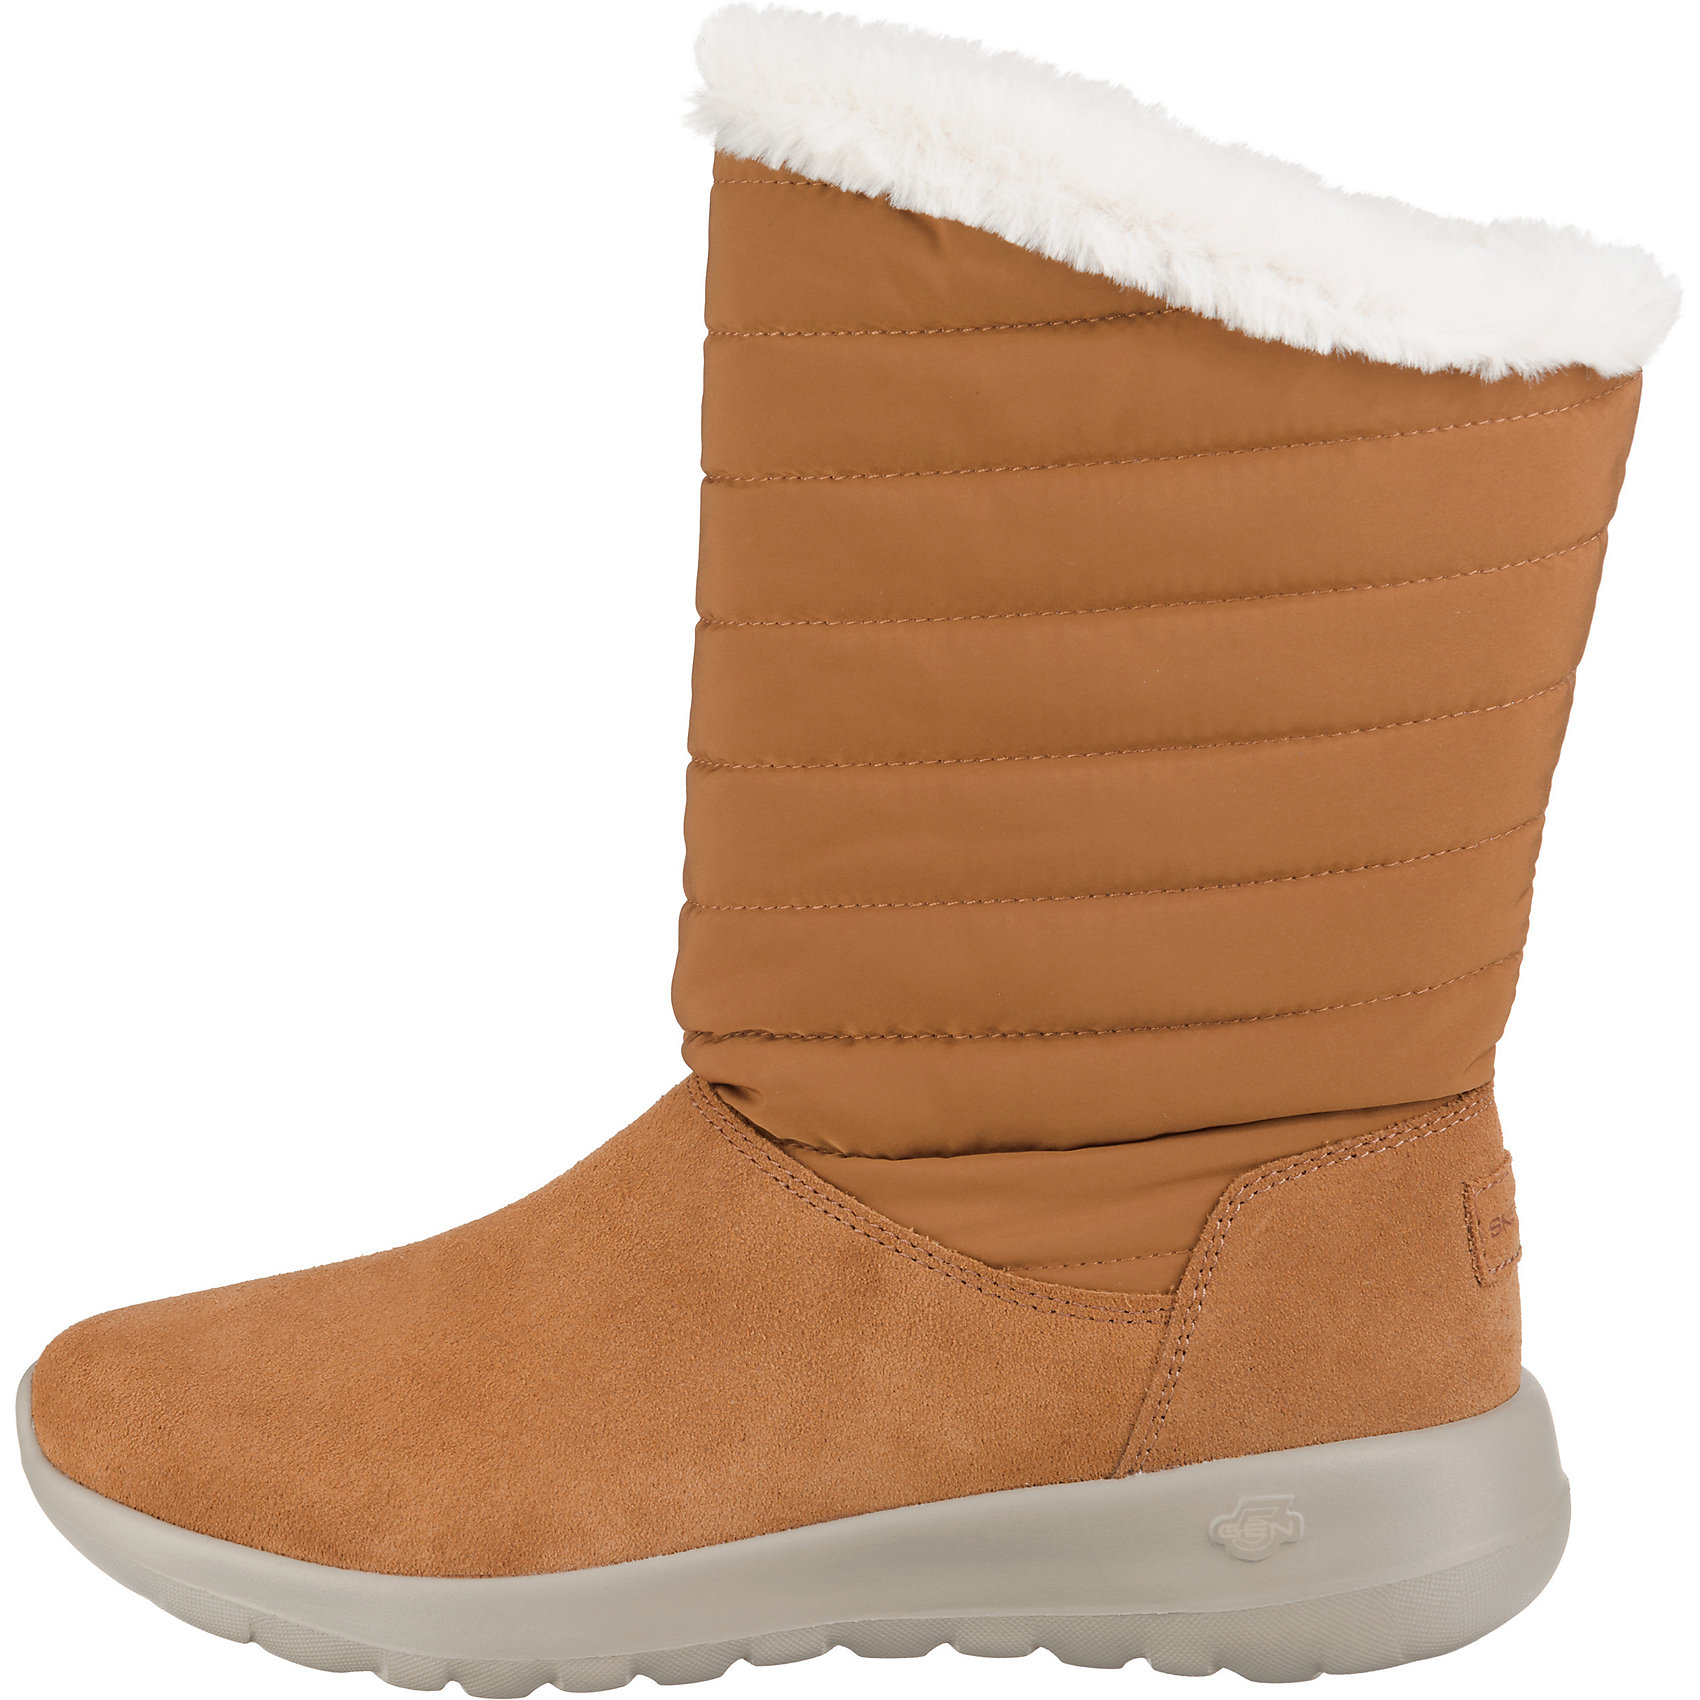 Neu SKECHERS ON-THE- GO JOY BLIZZ Damen Winterstiefel 8666291 für Damen JOY BLIZZ 113970